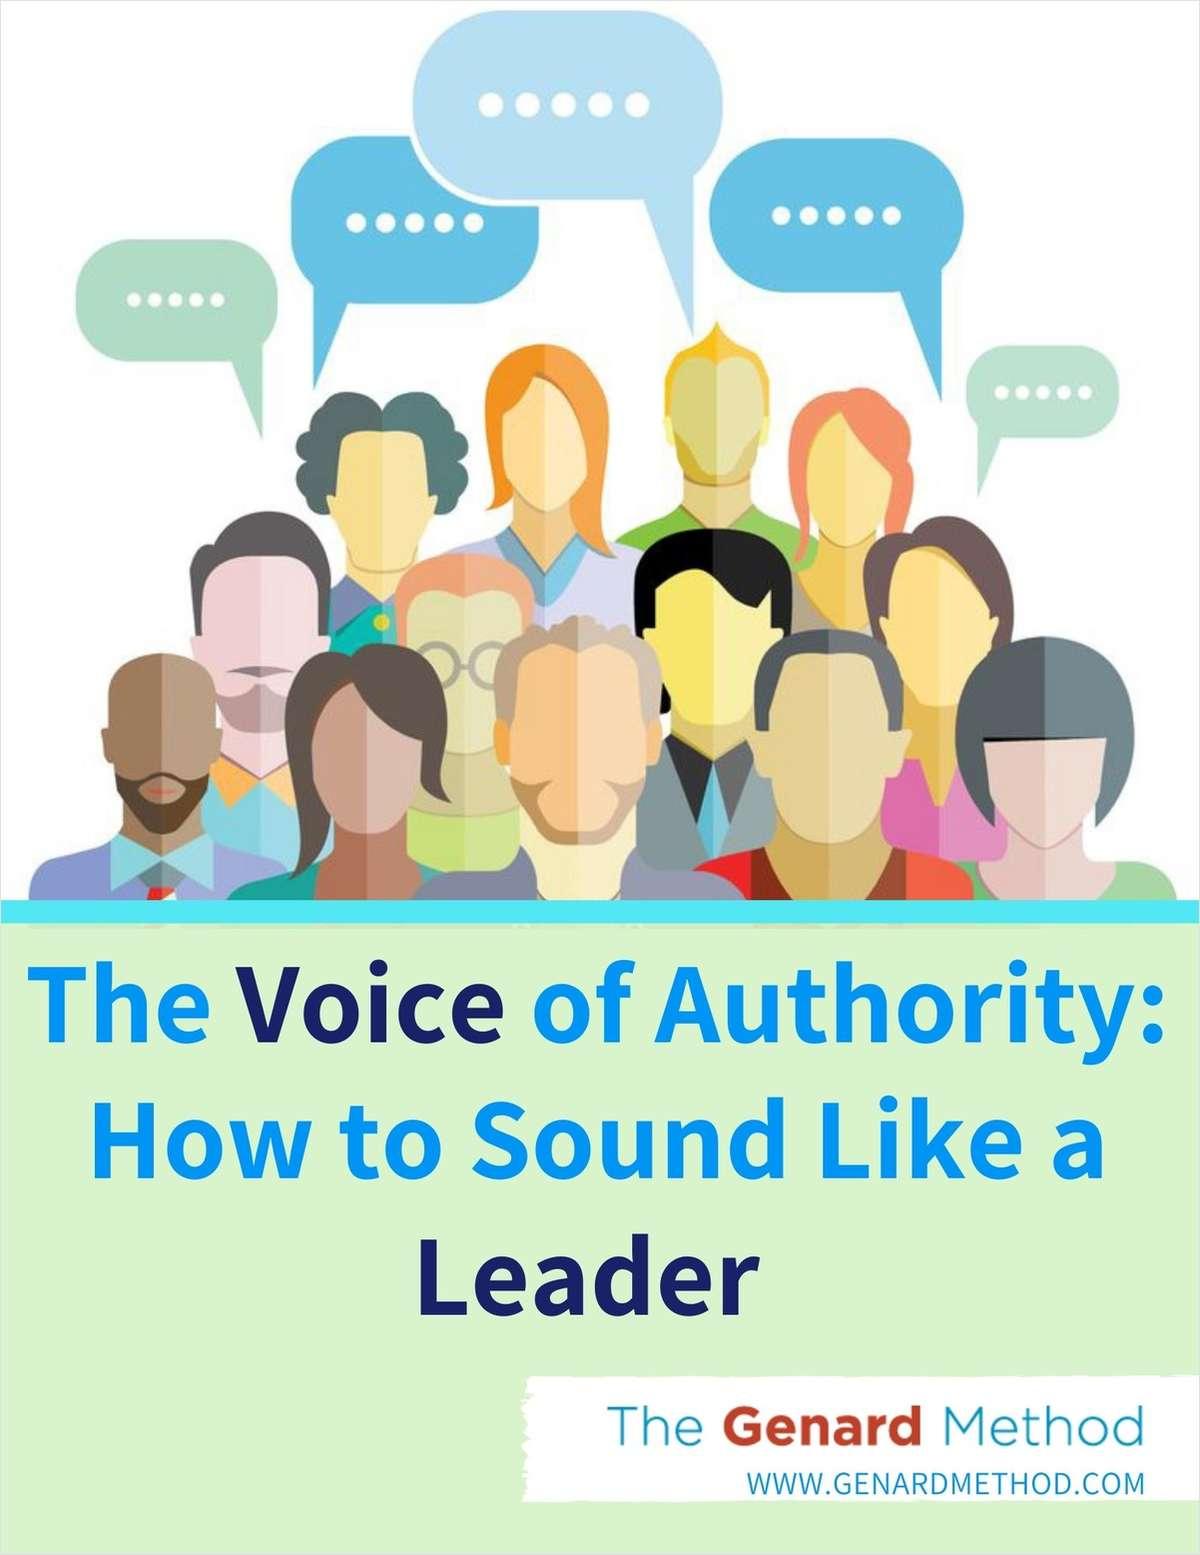 The Voice of Authority: How to Sound Like a Leader